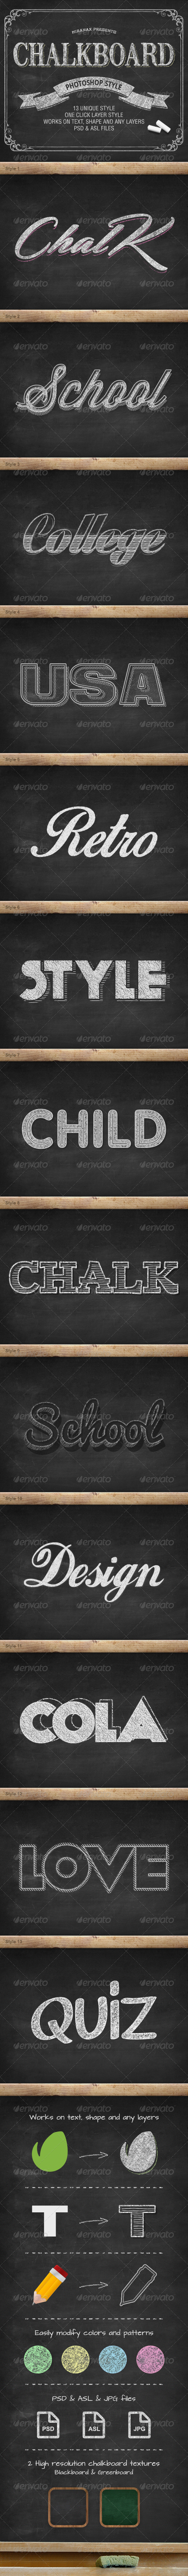 Chalkboard Photoshop PSD Layer Styles - Text Effects Styles